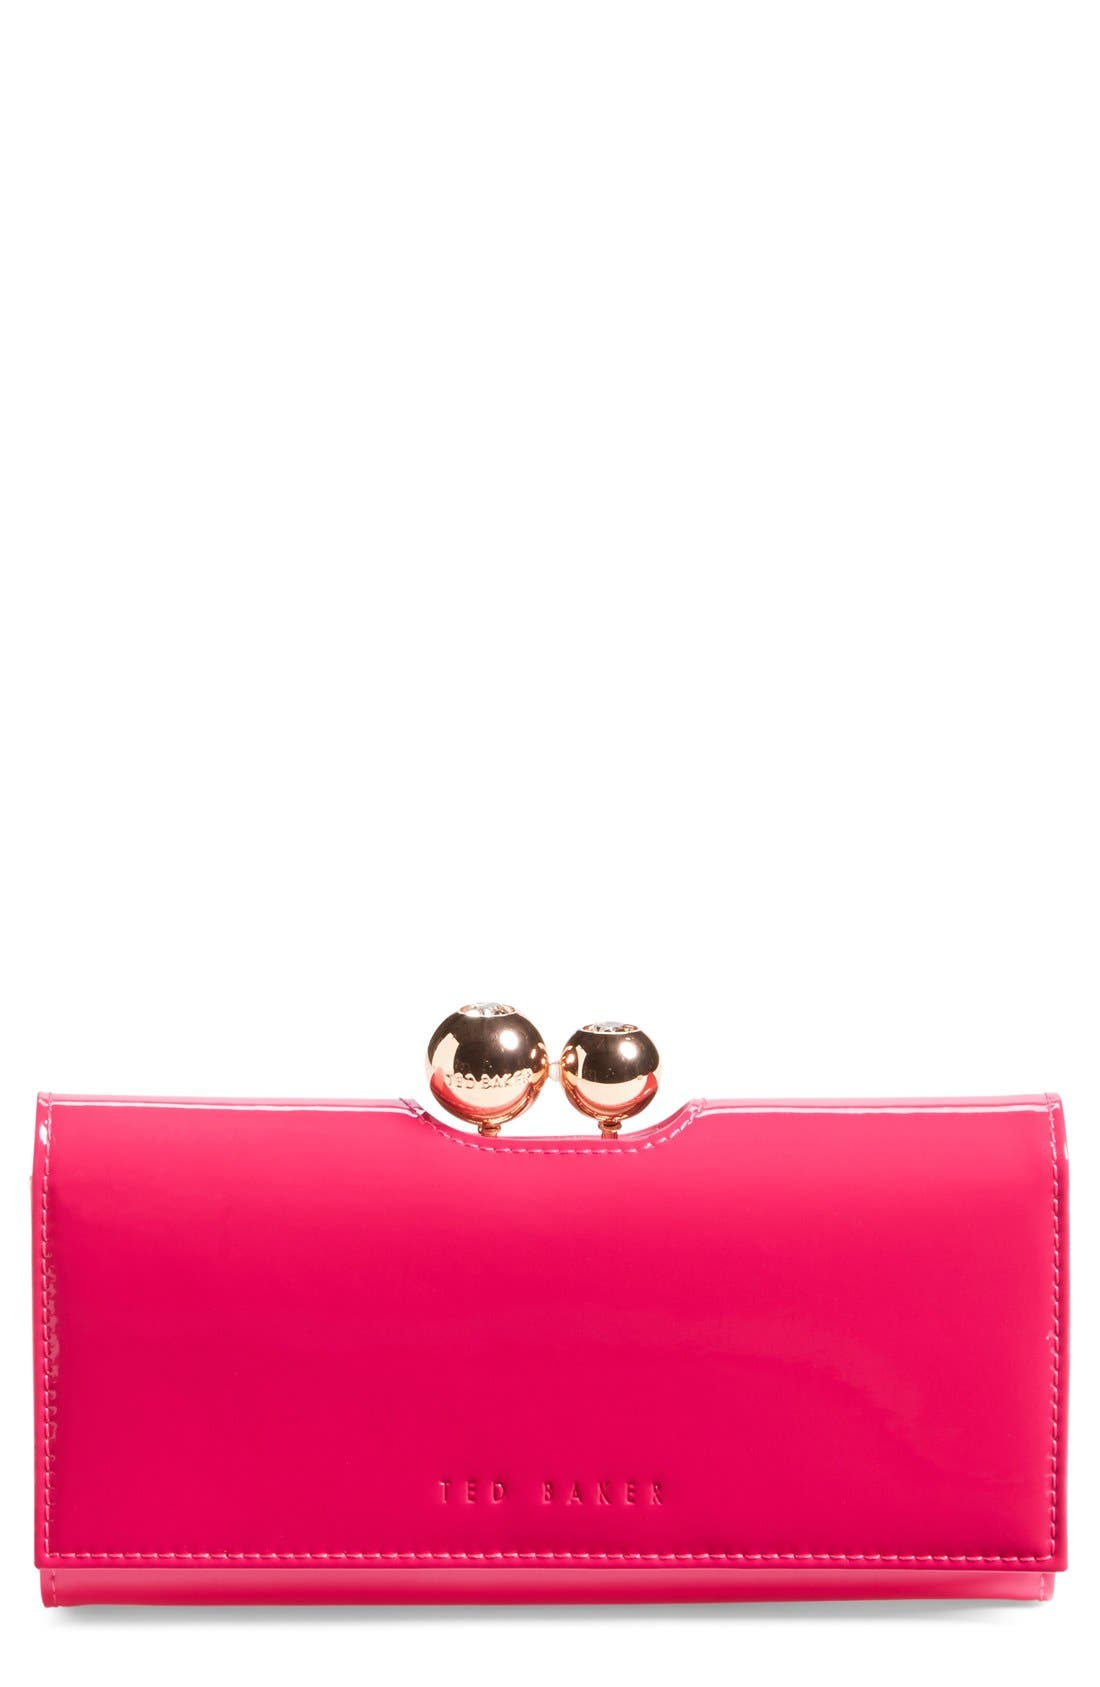 Main Image - Ted Baker London 'Odd Bobble' Patent Leather Matinee Wallet